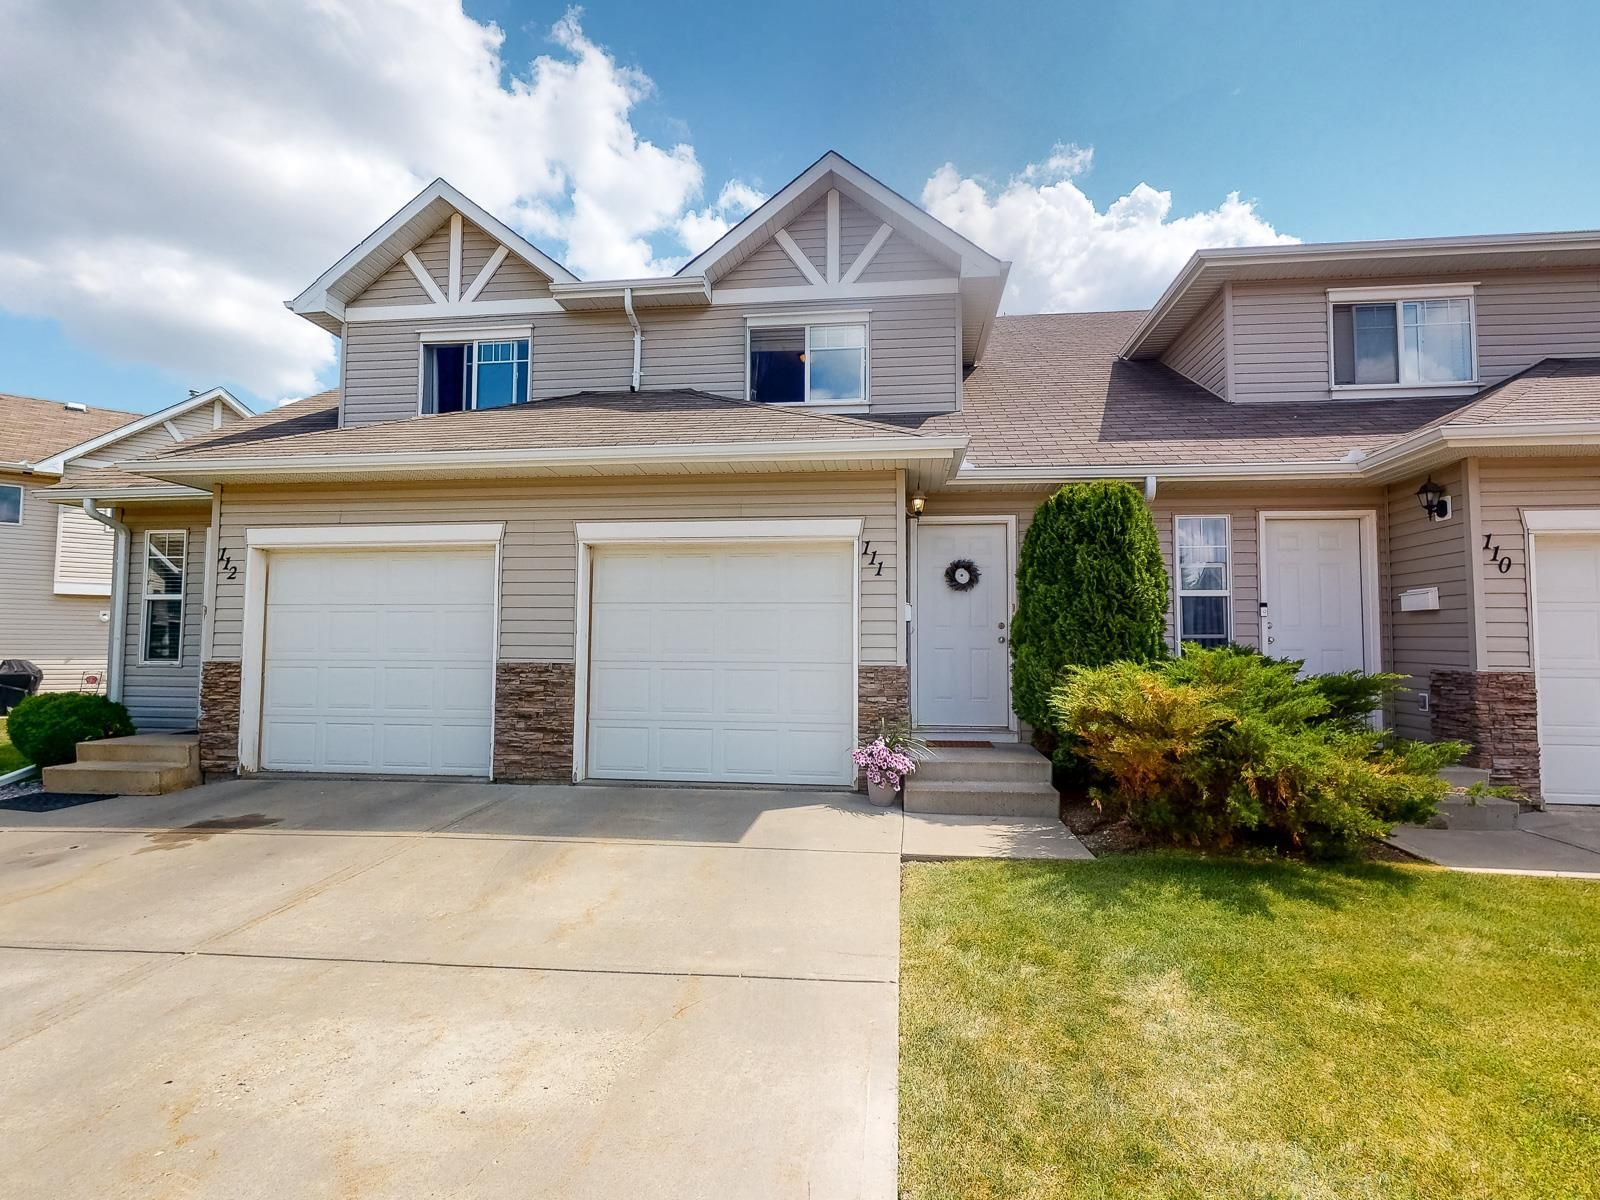 Main Photo: 111 150 EDWARDS Drive in Edmonton: Zone 53 Townhouse for sale : MLS®# E4252071